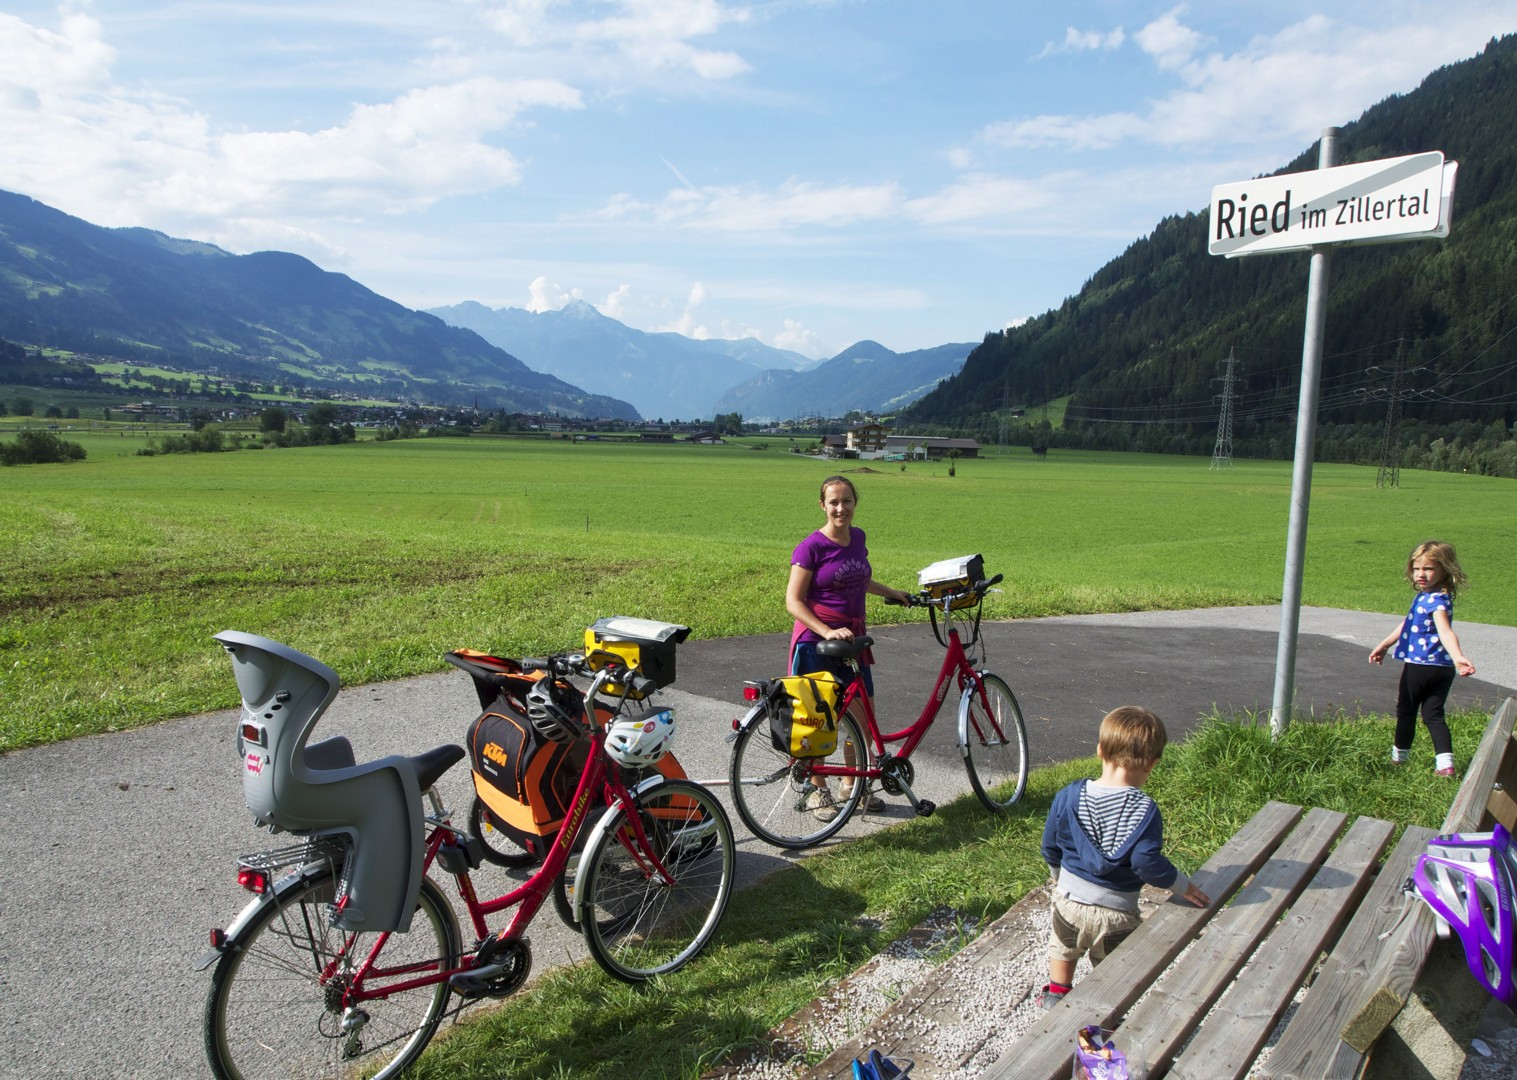 ried-austria-tyrolean-valleys-family-cycling-holiday.jpg - Austria - Tyrolean Valleys - Family Cycling